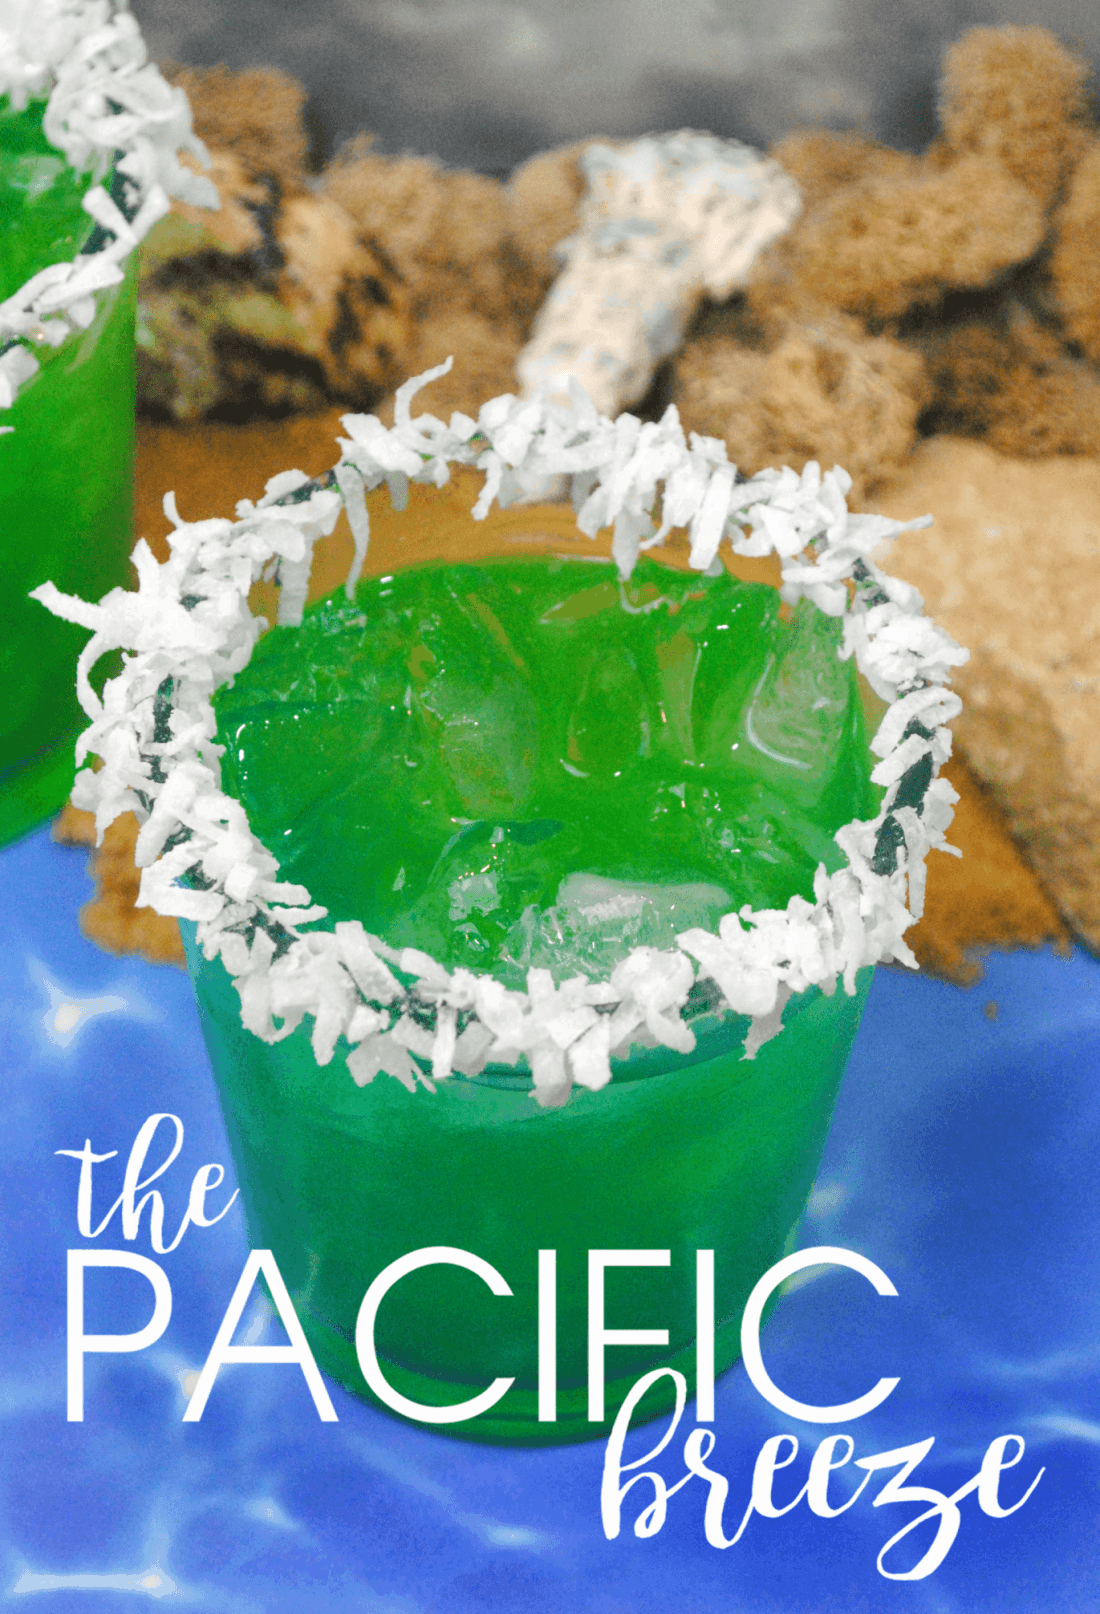 The Pacific Breeze Moana Cocktail